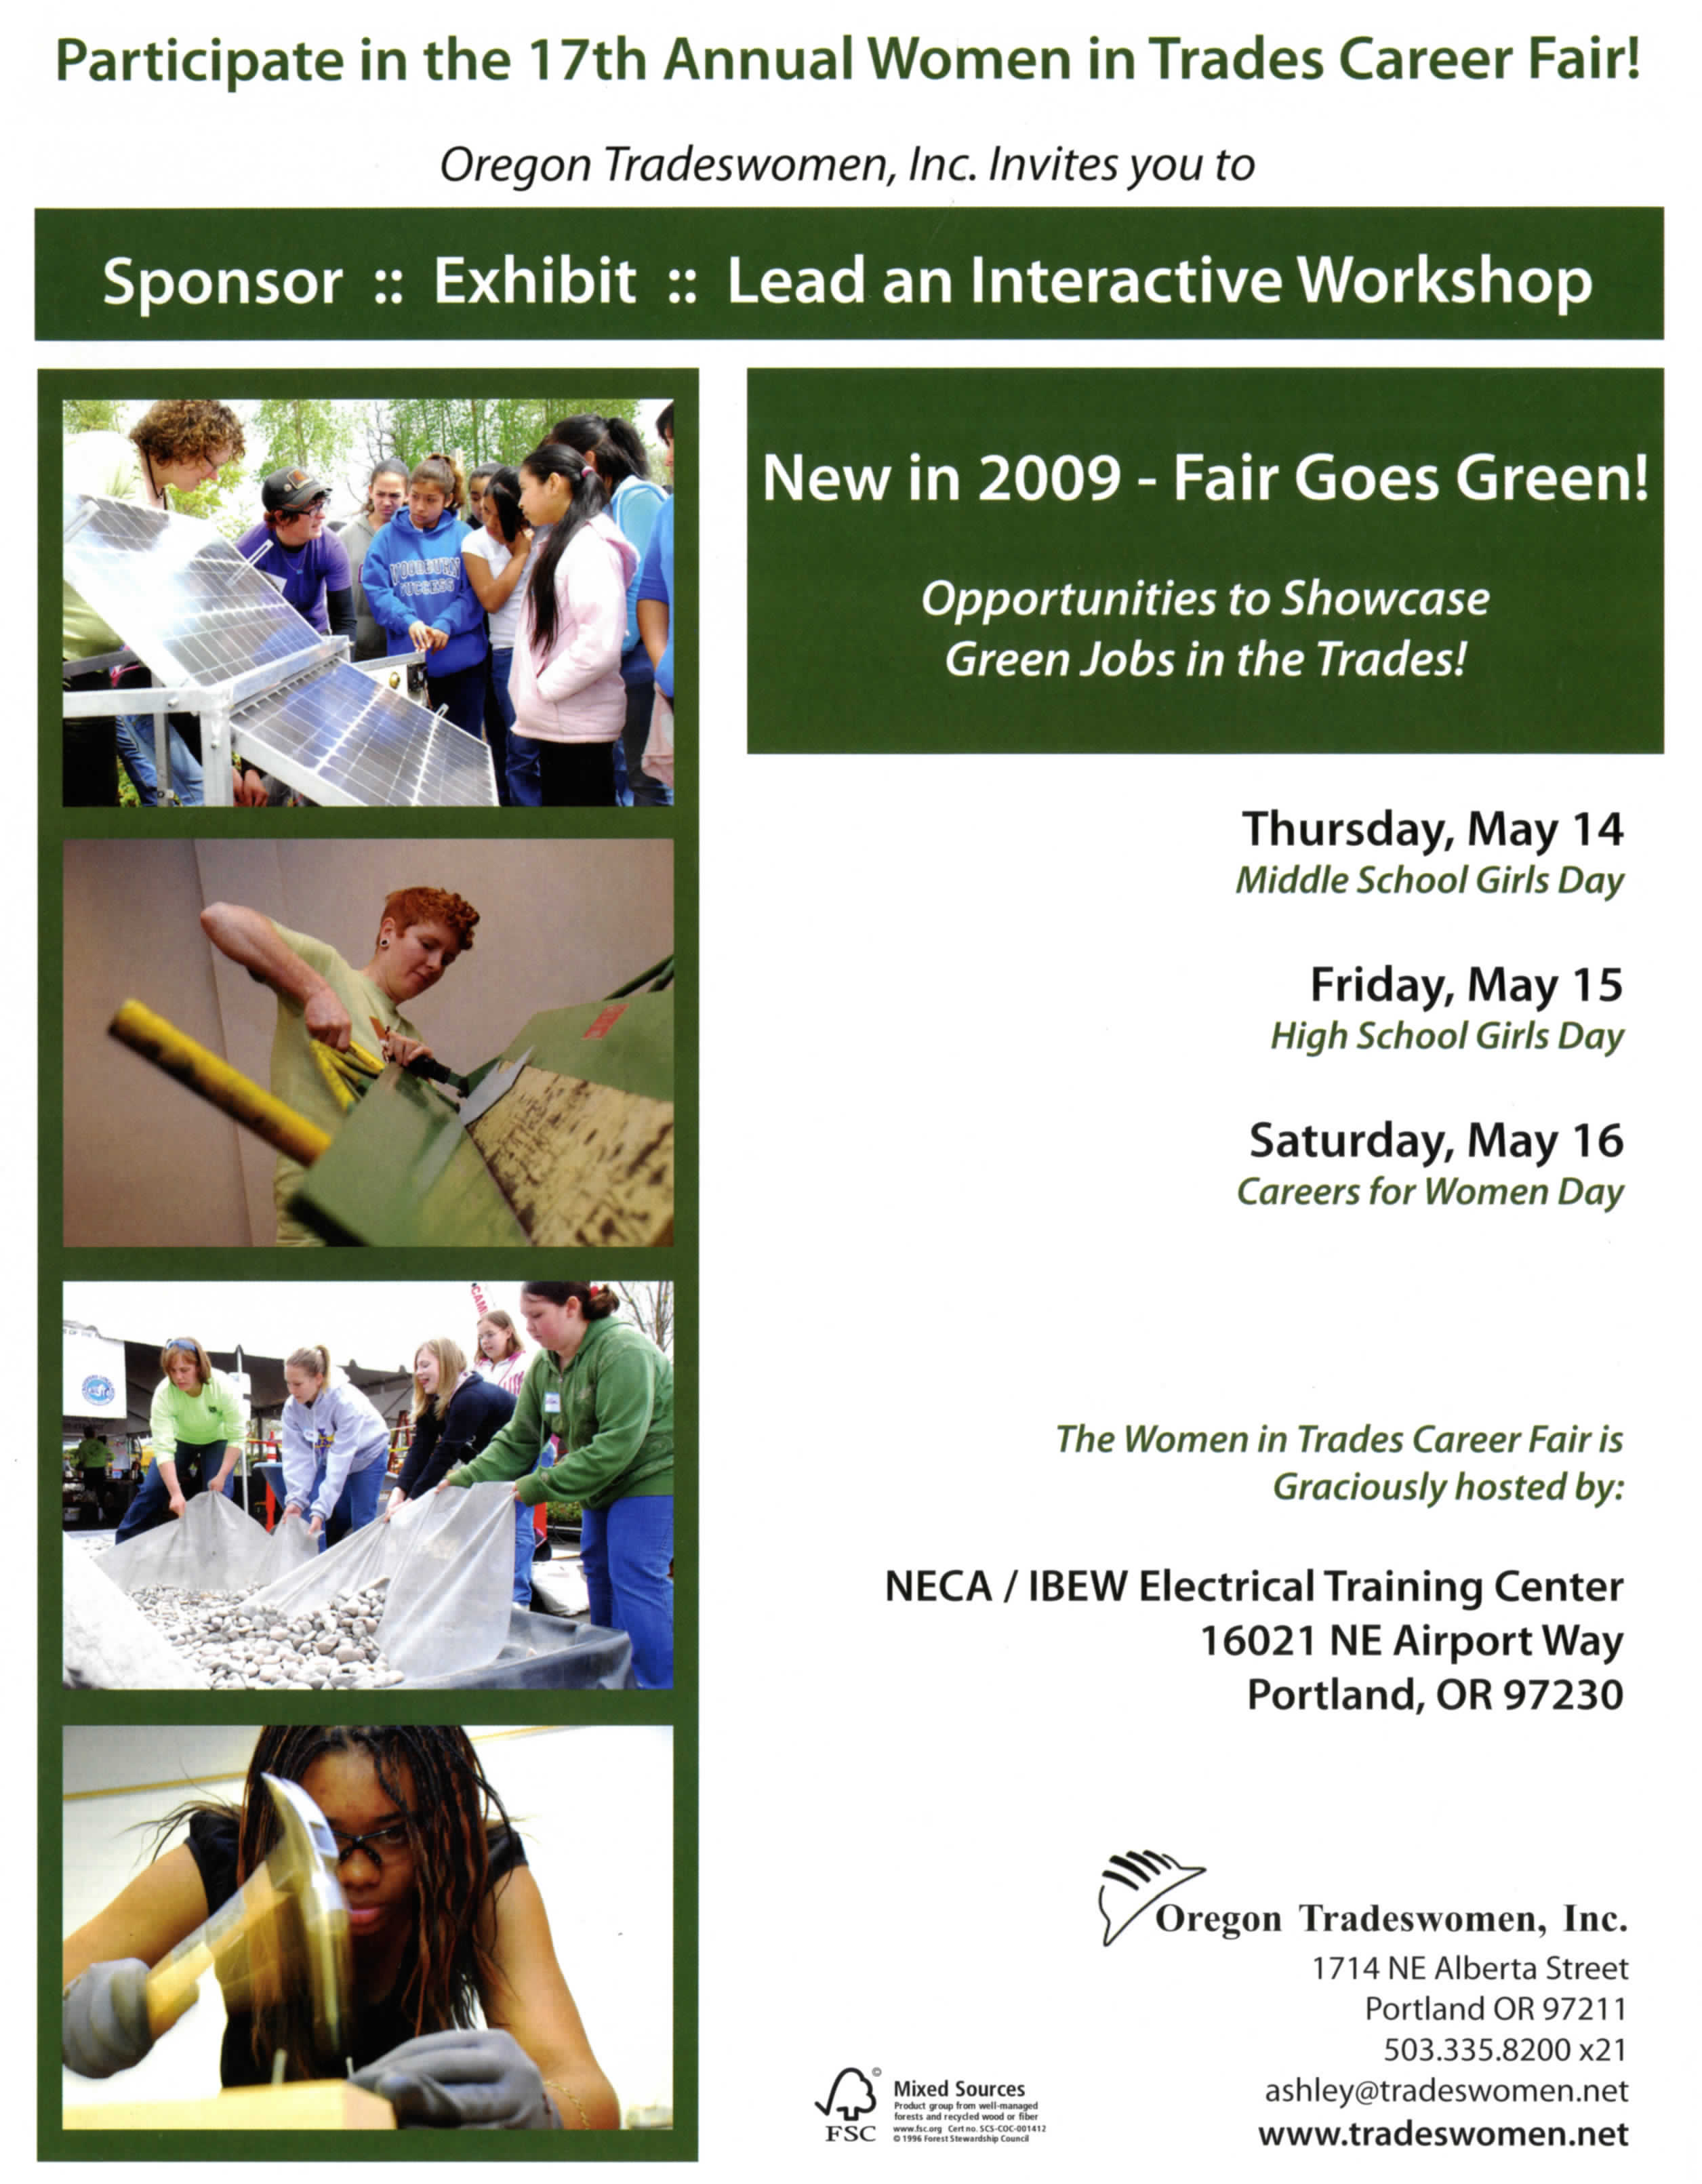 Oregon Tradeswomen Inc. 17th Annual Women in Trades Career Fair Flyer